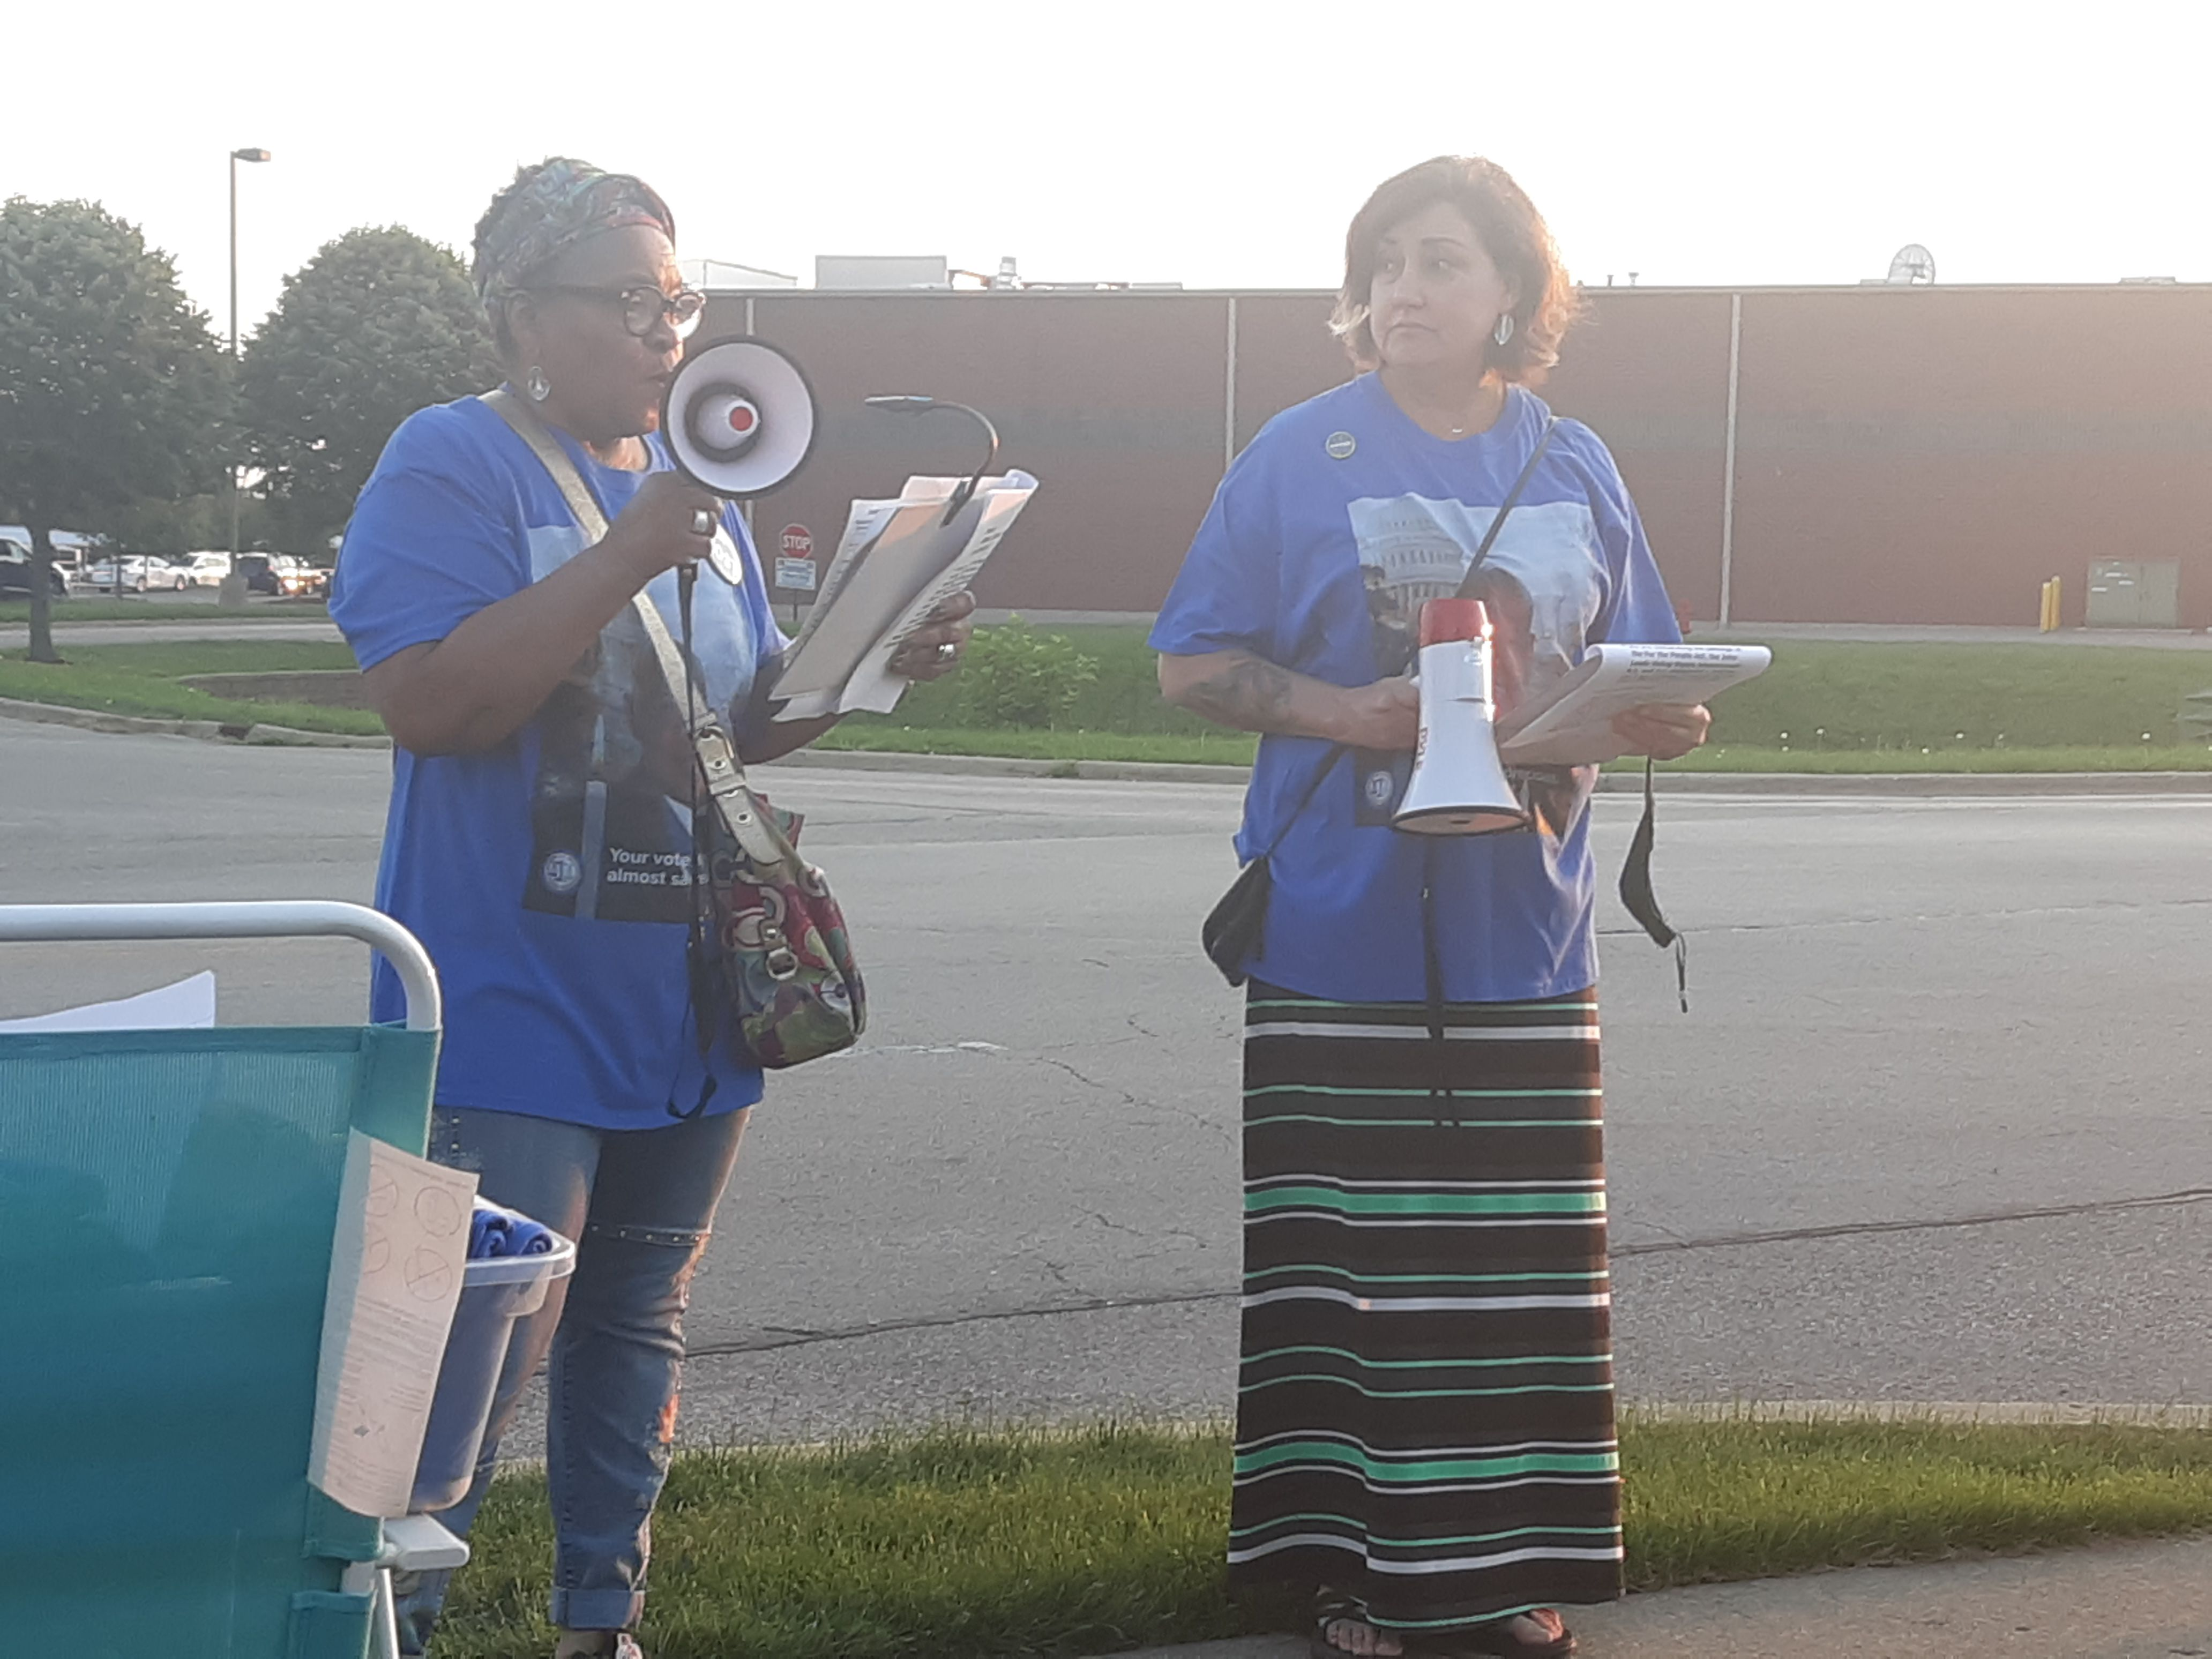 Eveej Malone, who organized a vigil Saturday night in honor of late Rep. John Lewis, speaks to a group of about 30 people gathered in Crystal Lake.